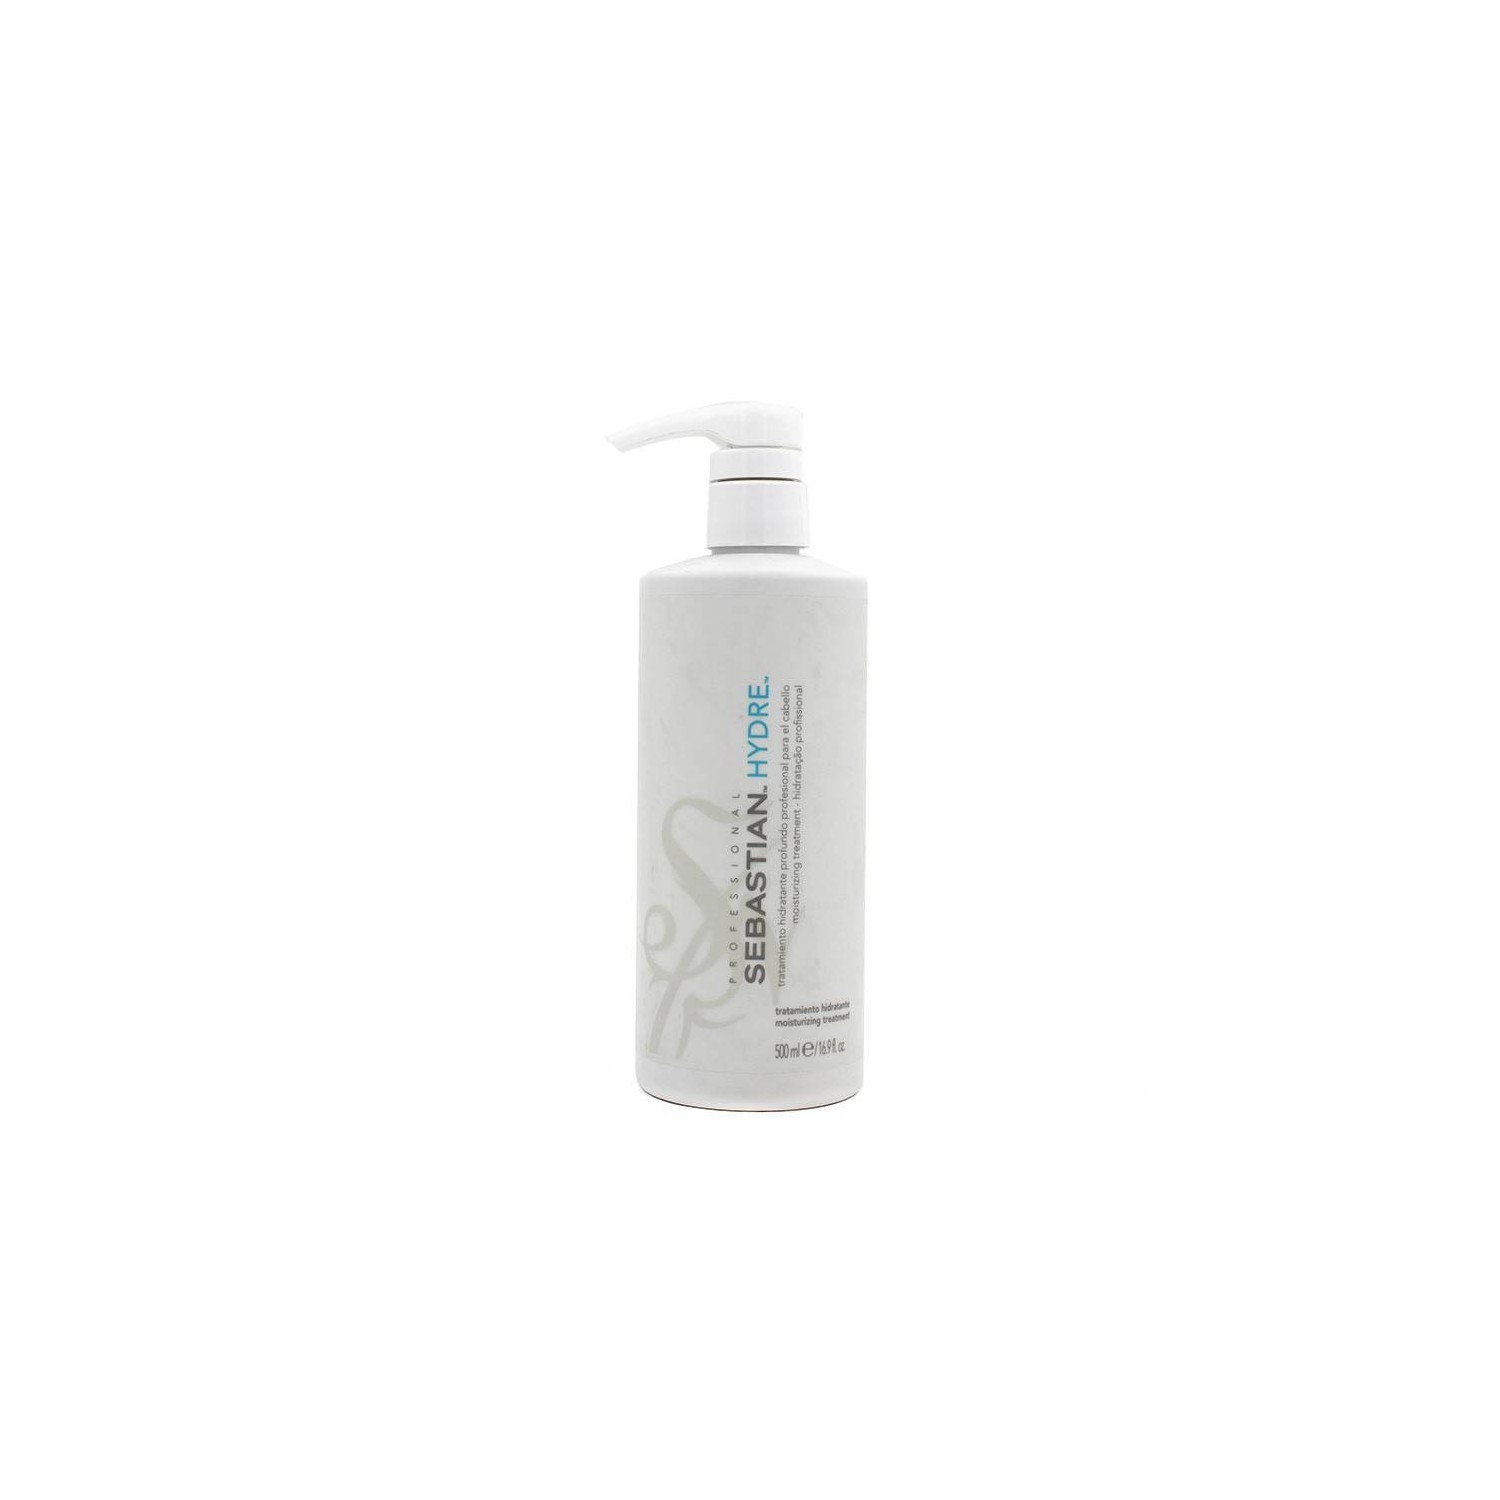 Sebastian Hydre Treatment 500 Ml